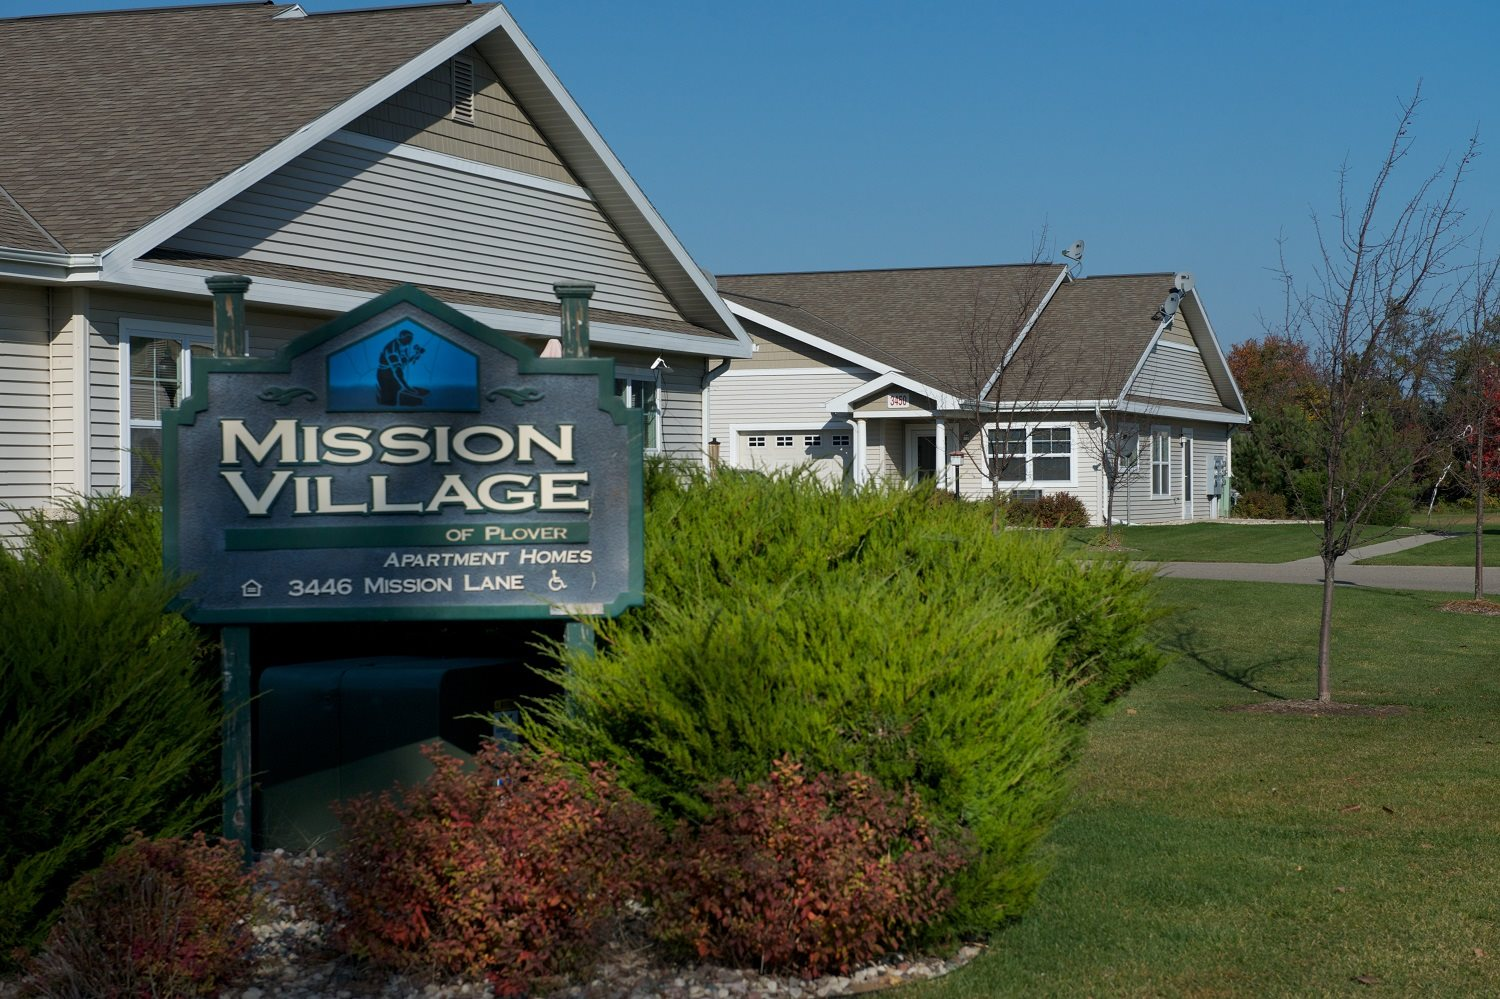 Image of Mission Village of Plover